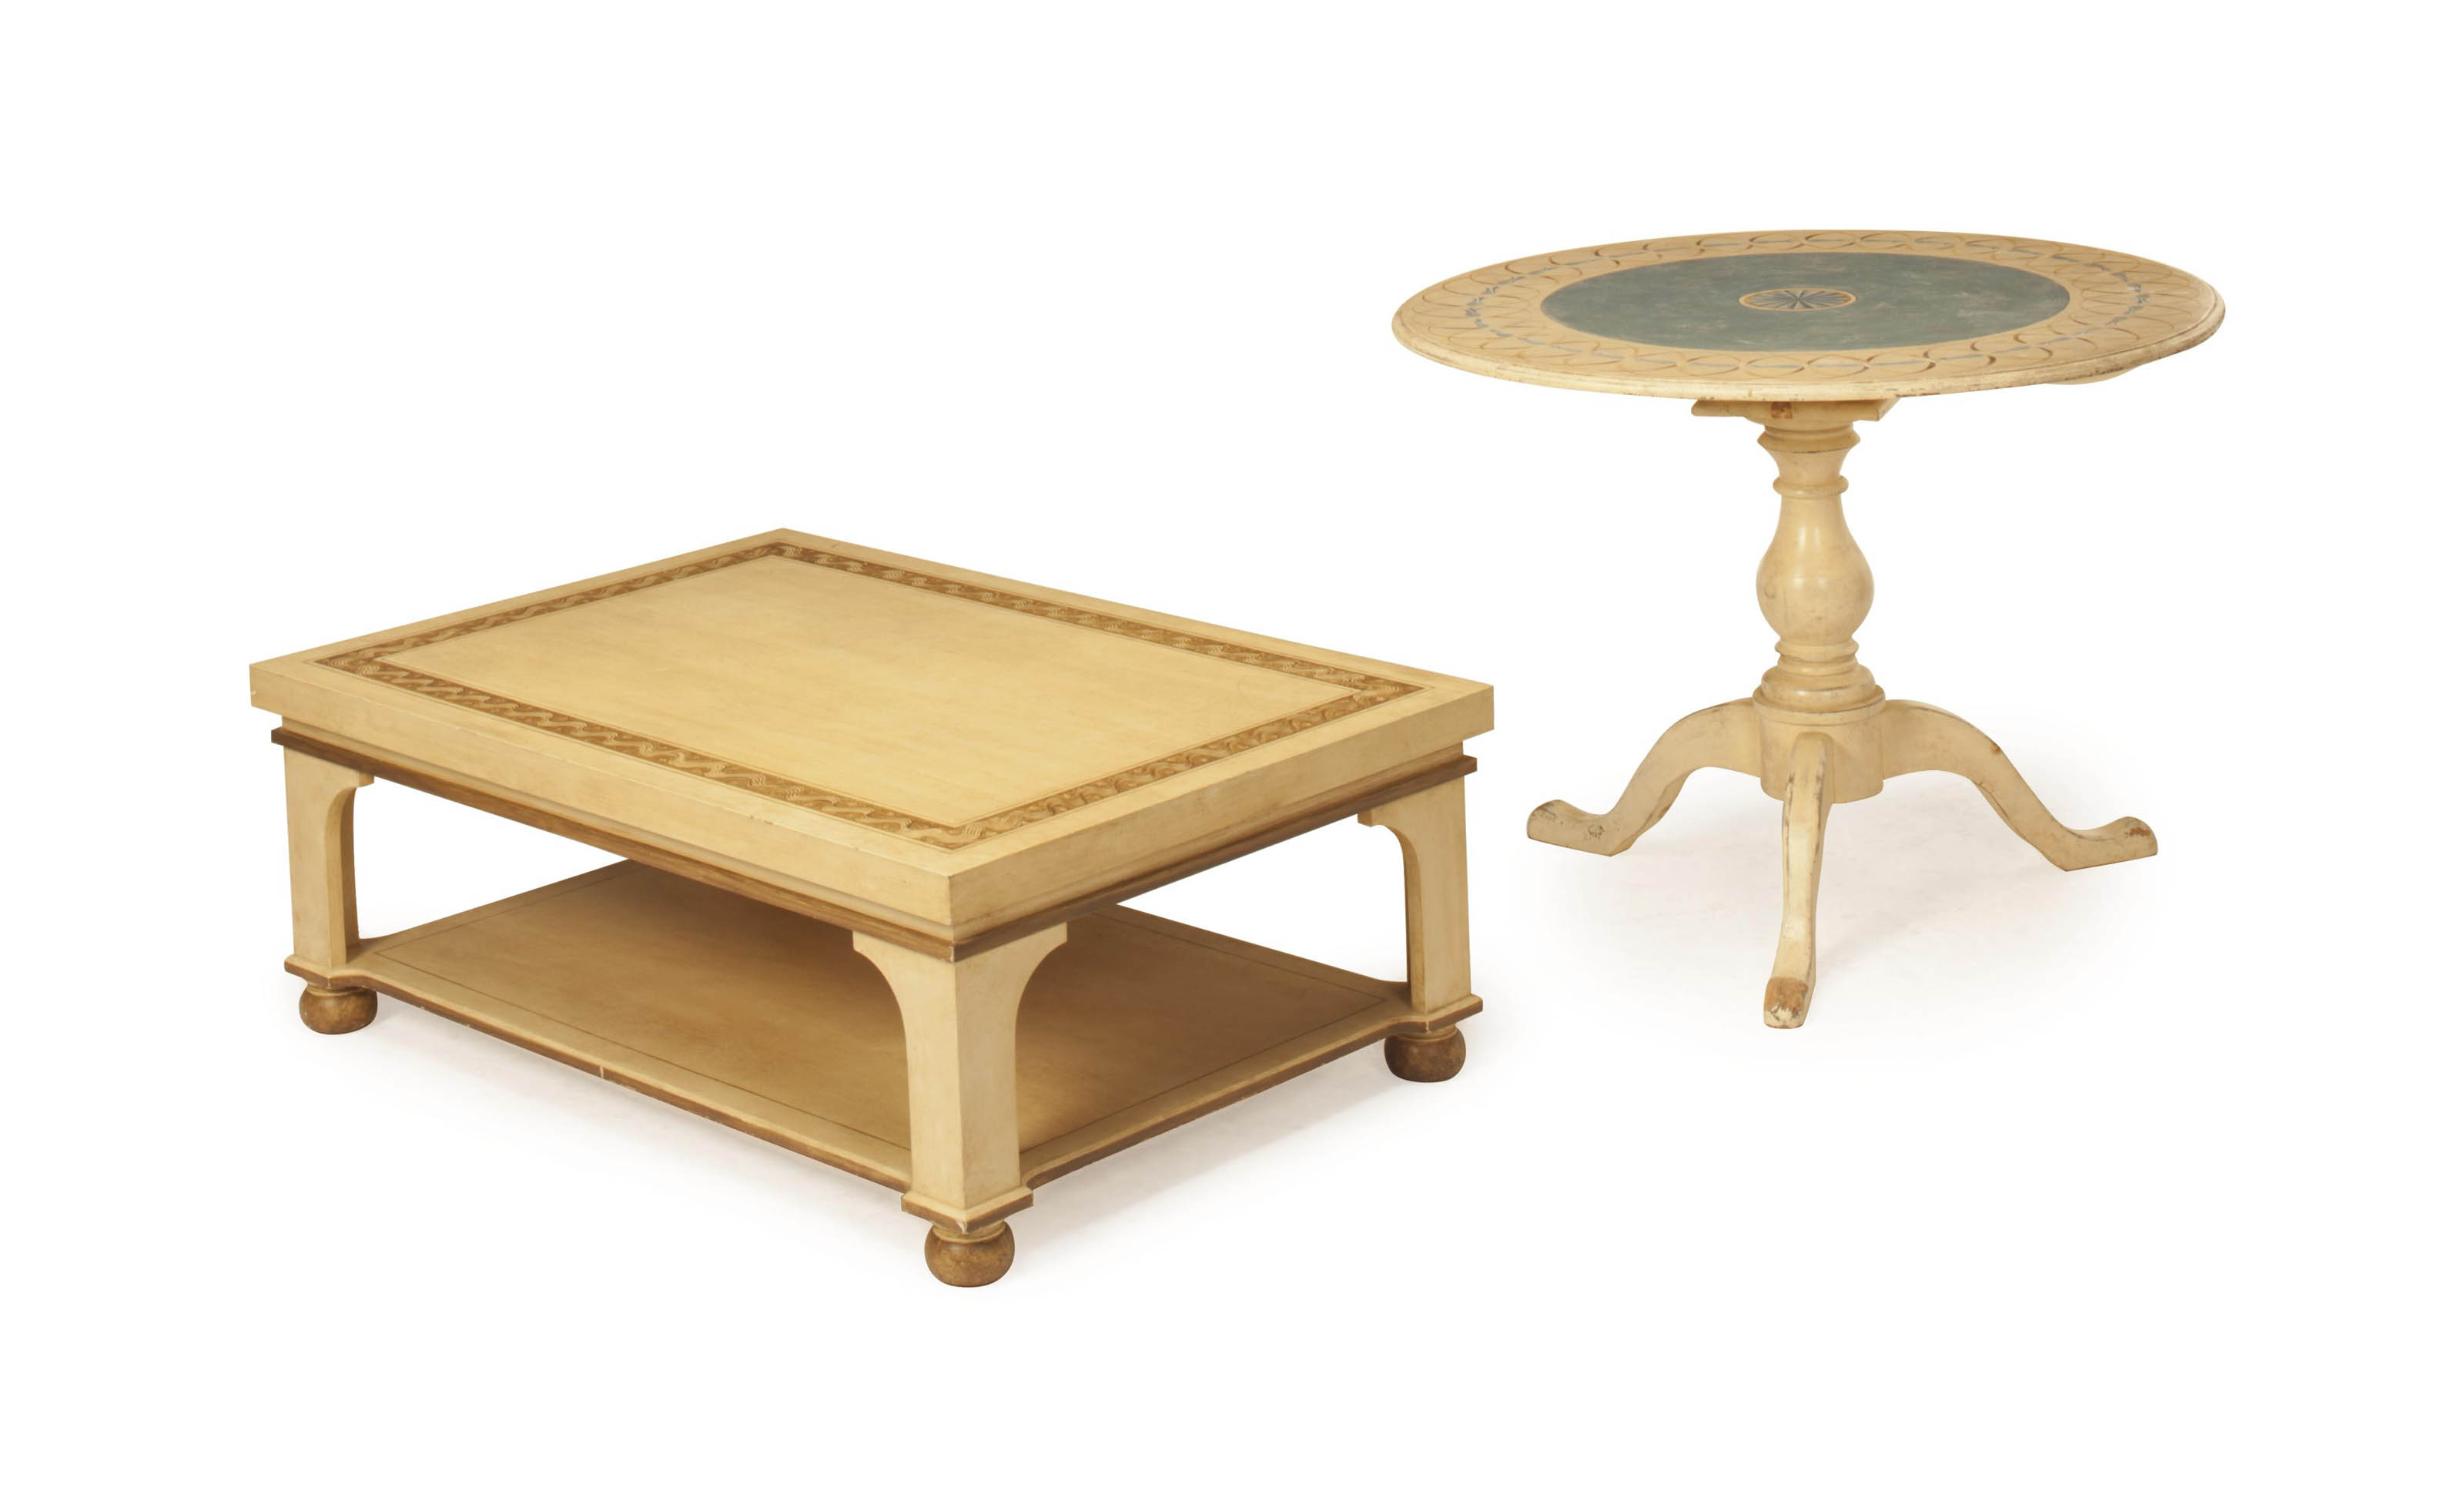 A PALE BROWN PAINTED LOW TABLE